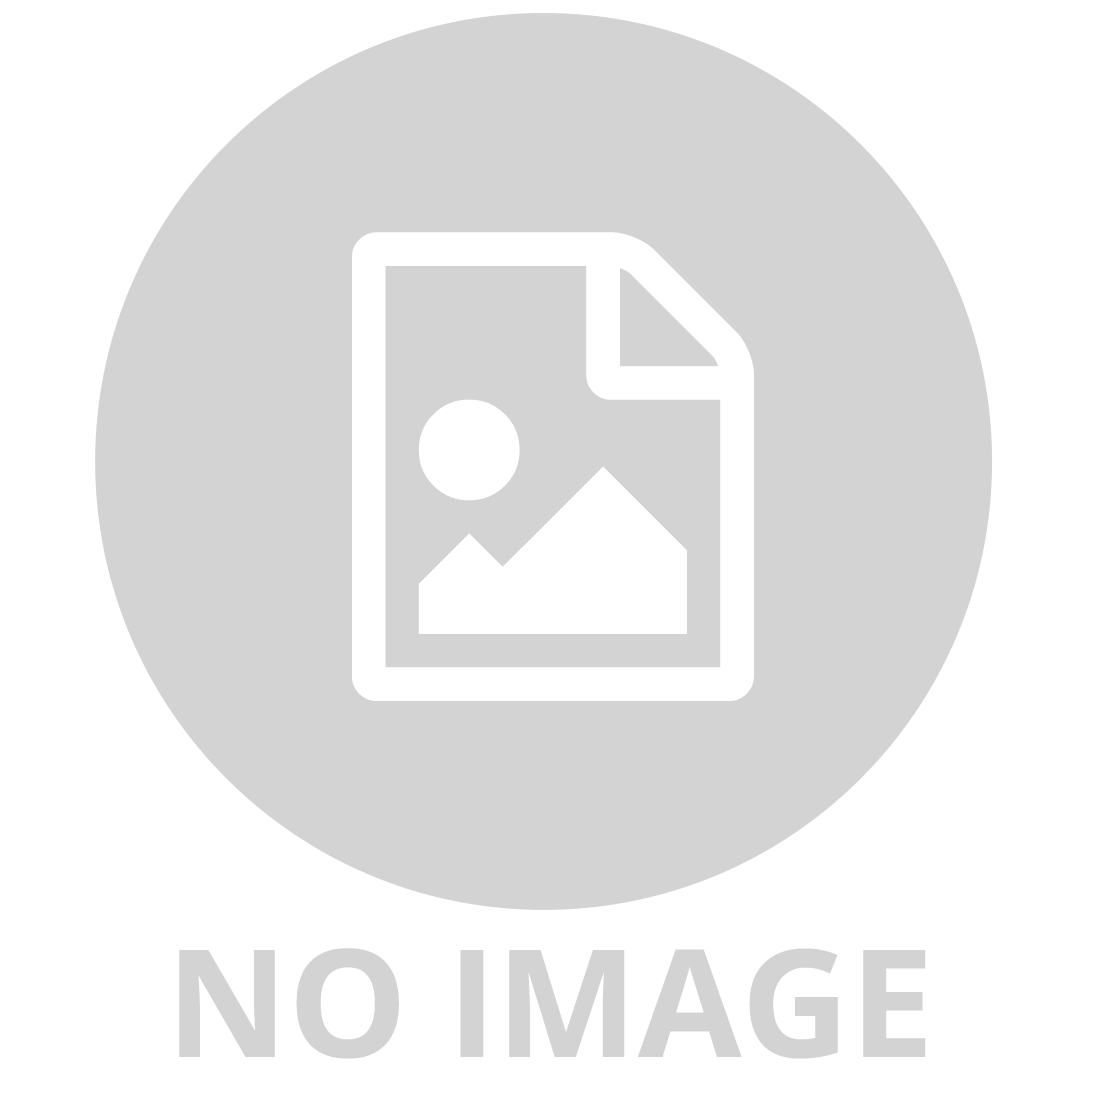 Audrey Pewter Wall Light 1lt